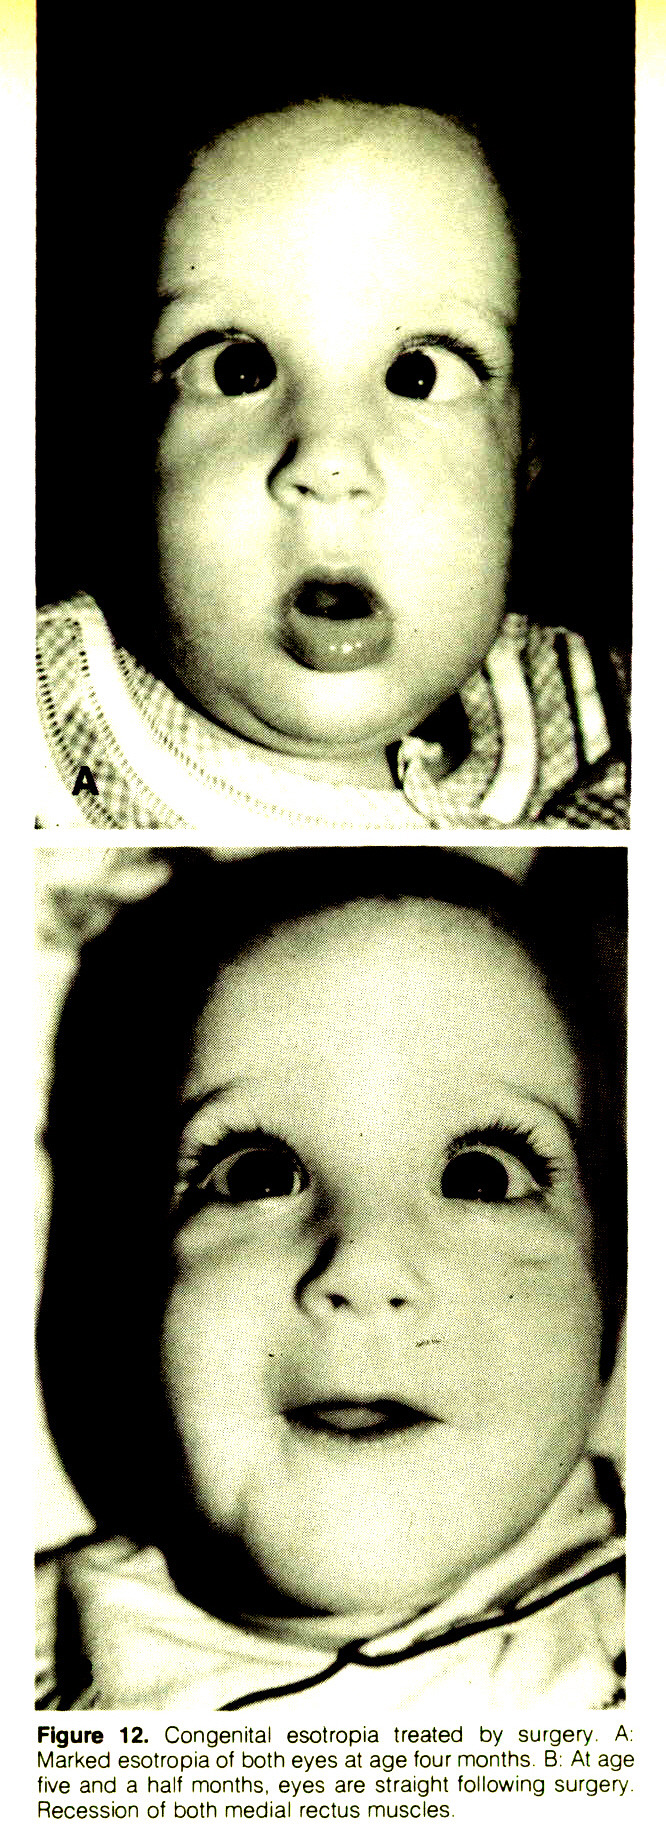 Figure 12. Congenital esotropia treated by surgery. A: Marked esotropia of both eyes at age four months B: At age five and a half months, eyes are straight following surgery. Recession of both medial rectus muscles